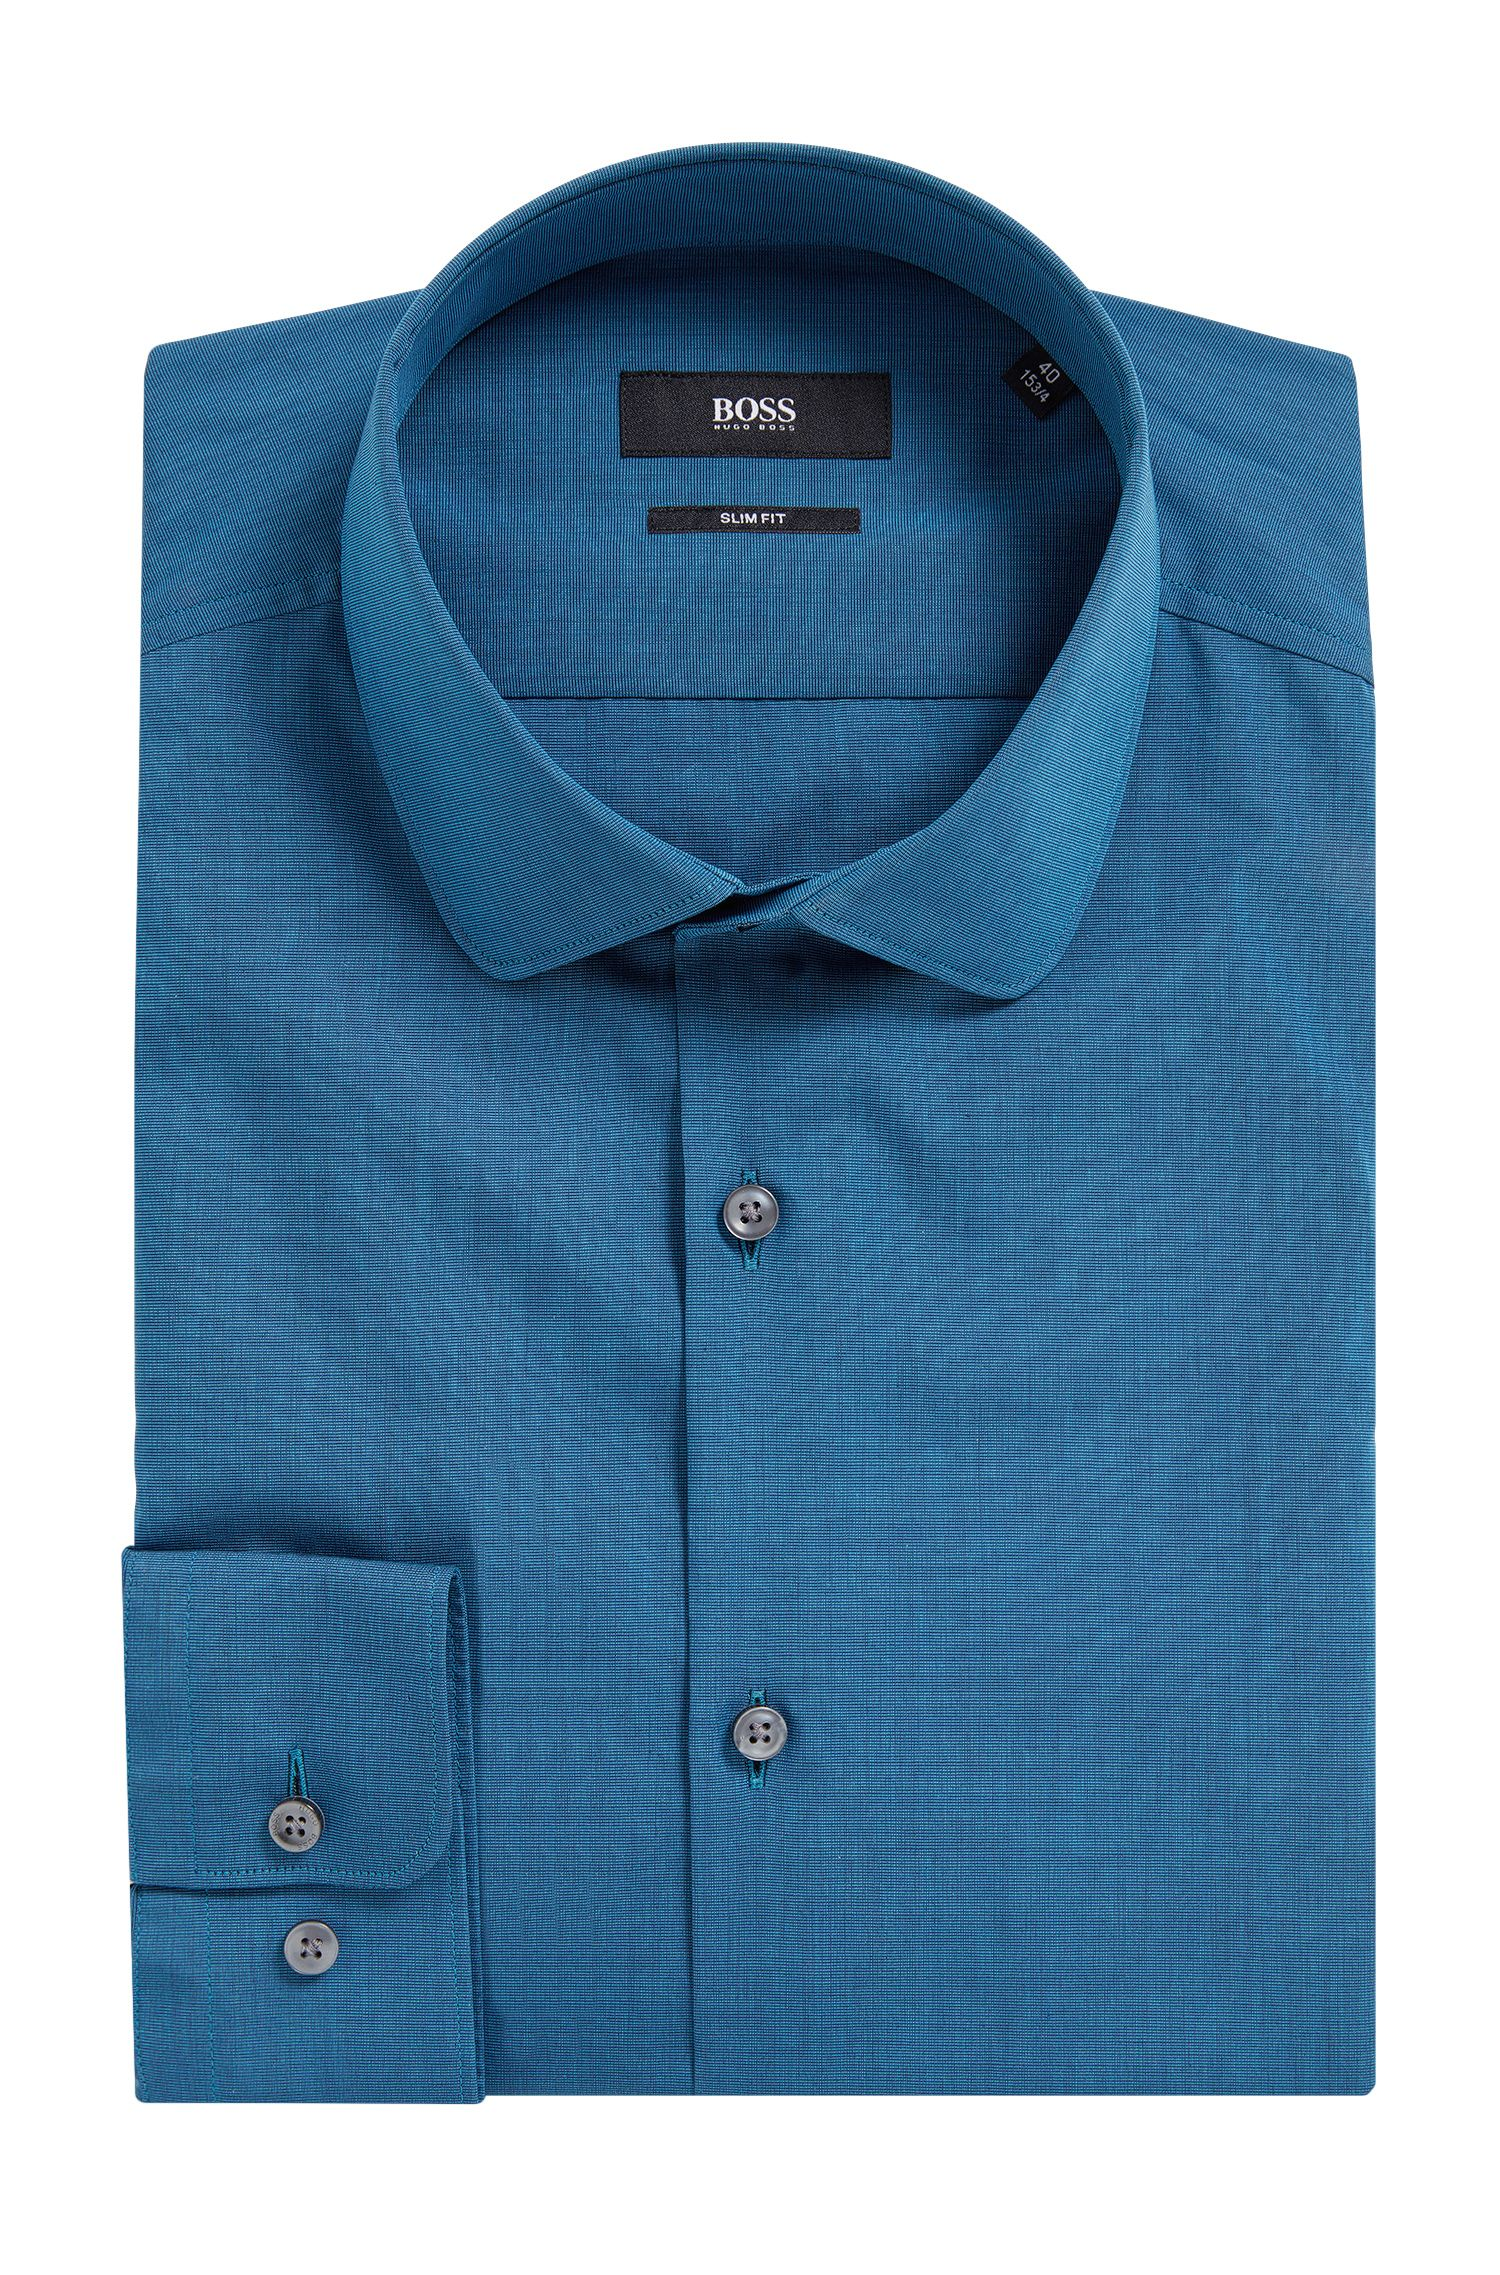 Cotton Poplin Dress Shirt, Slim Fit | Joshua